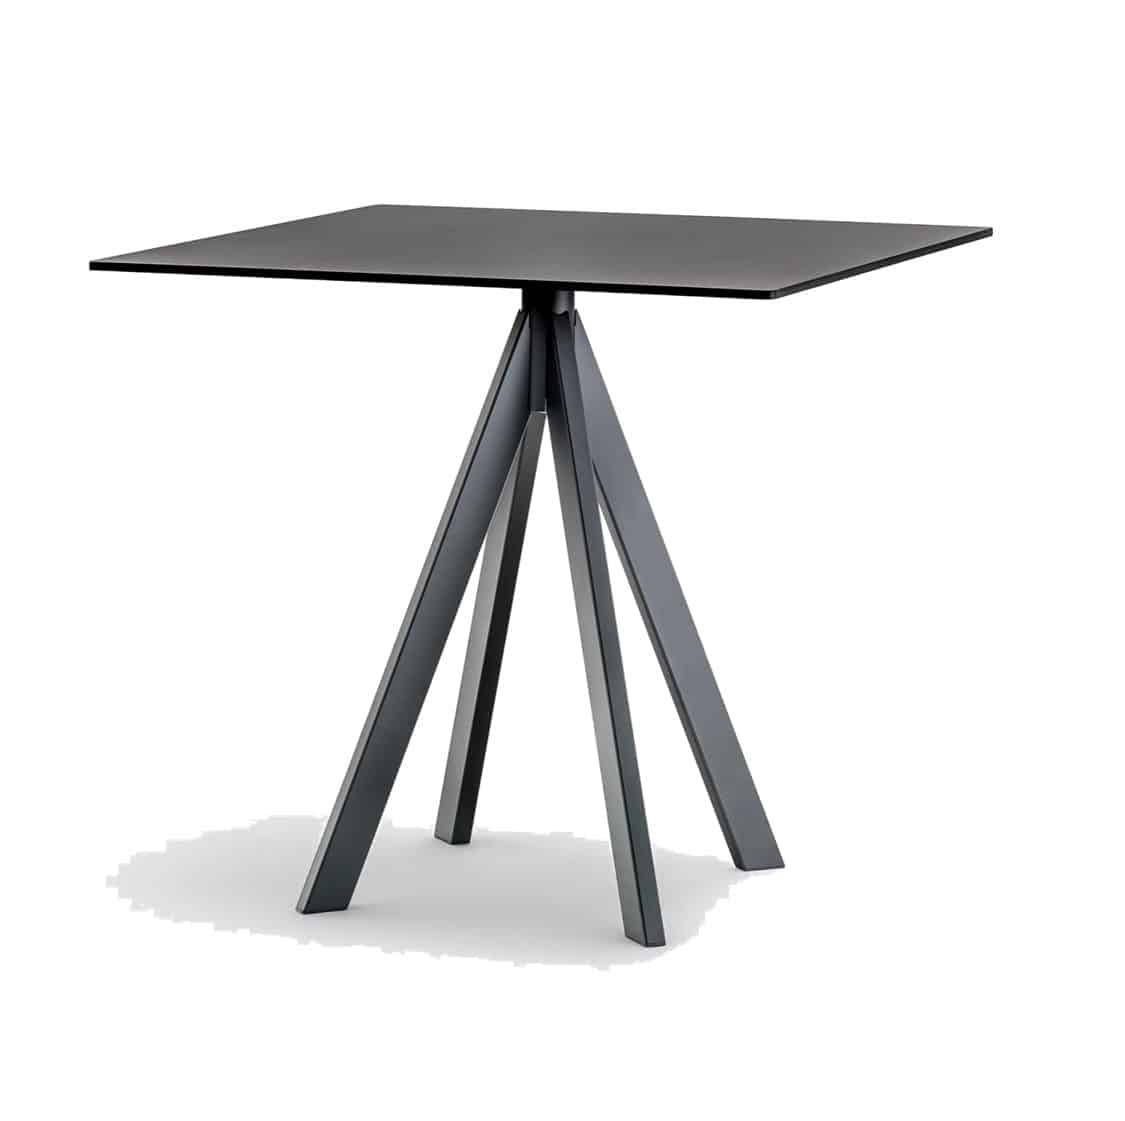 Arki Table Base Ark 4 Pedrali at DeFrae Contract Furniture Side View